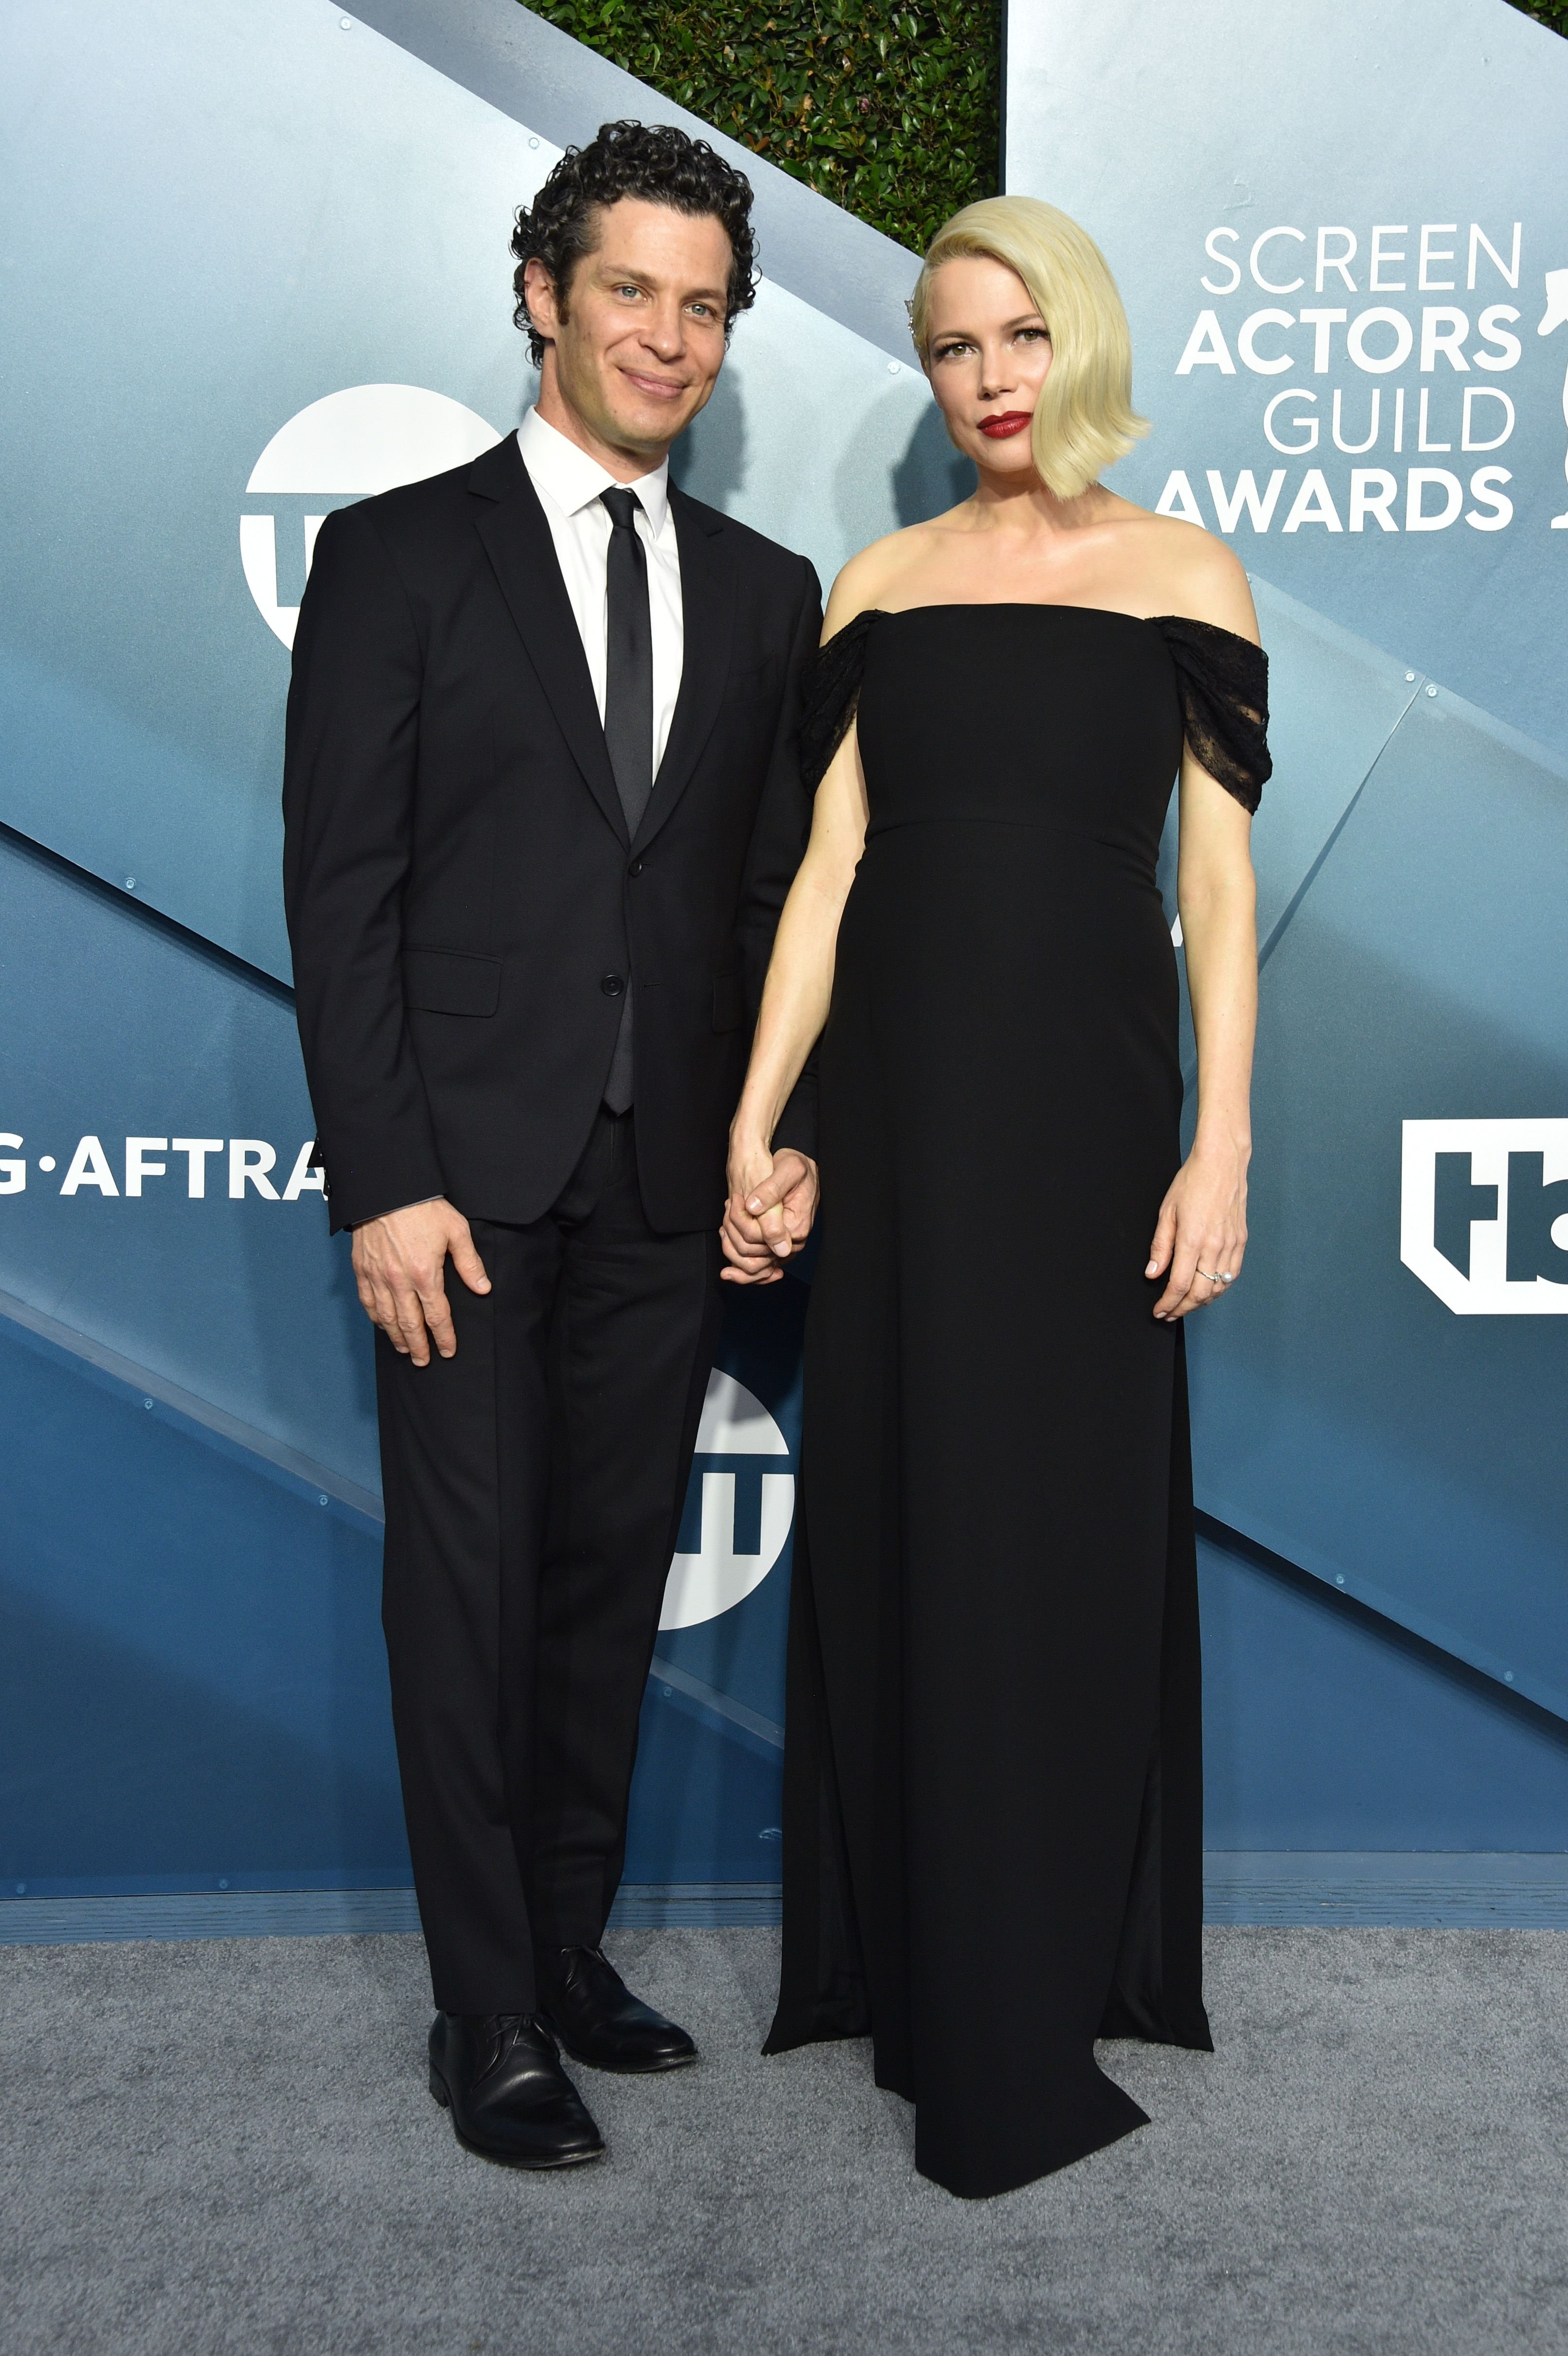 Thomas Kail and Michelle Williams at the 26th Annual Screen Actors Guild Awards at The Shrine Auditorium on January 19, 2020 in Los Angeles, California | Photo: Getty Images